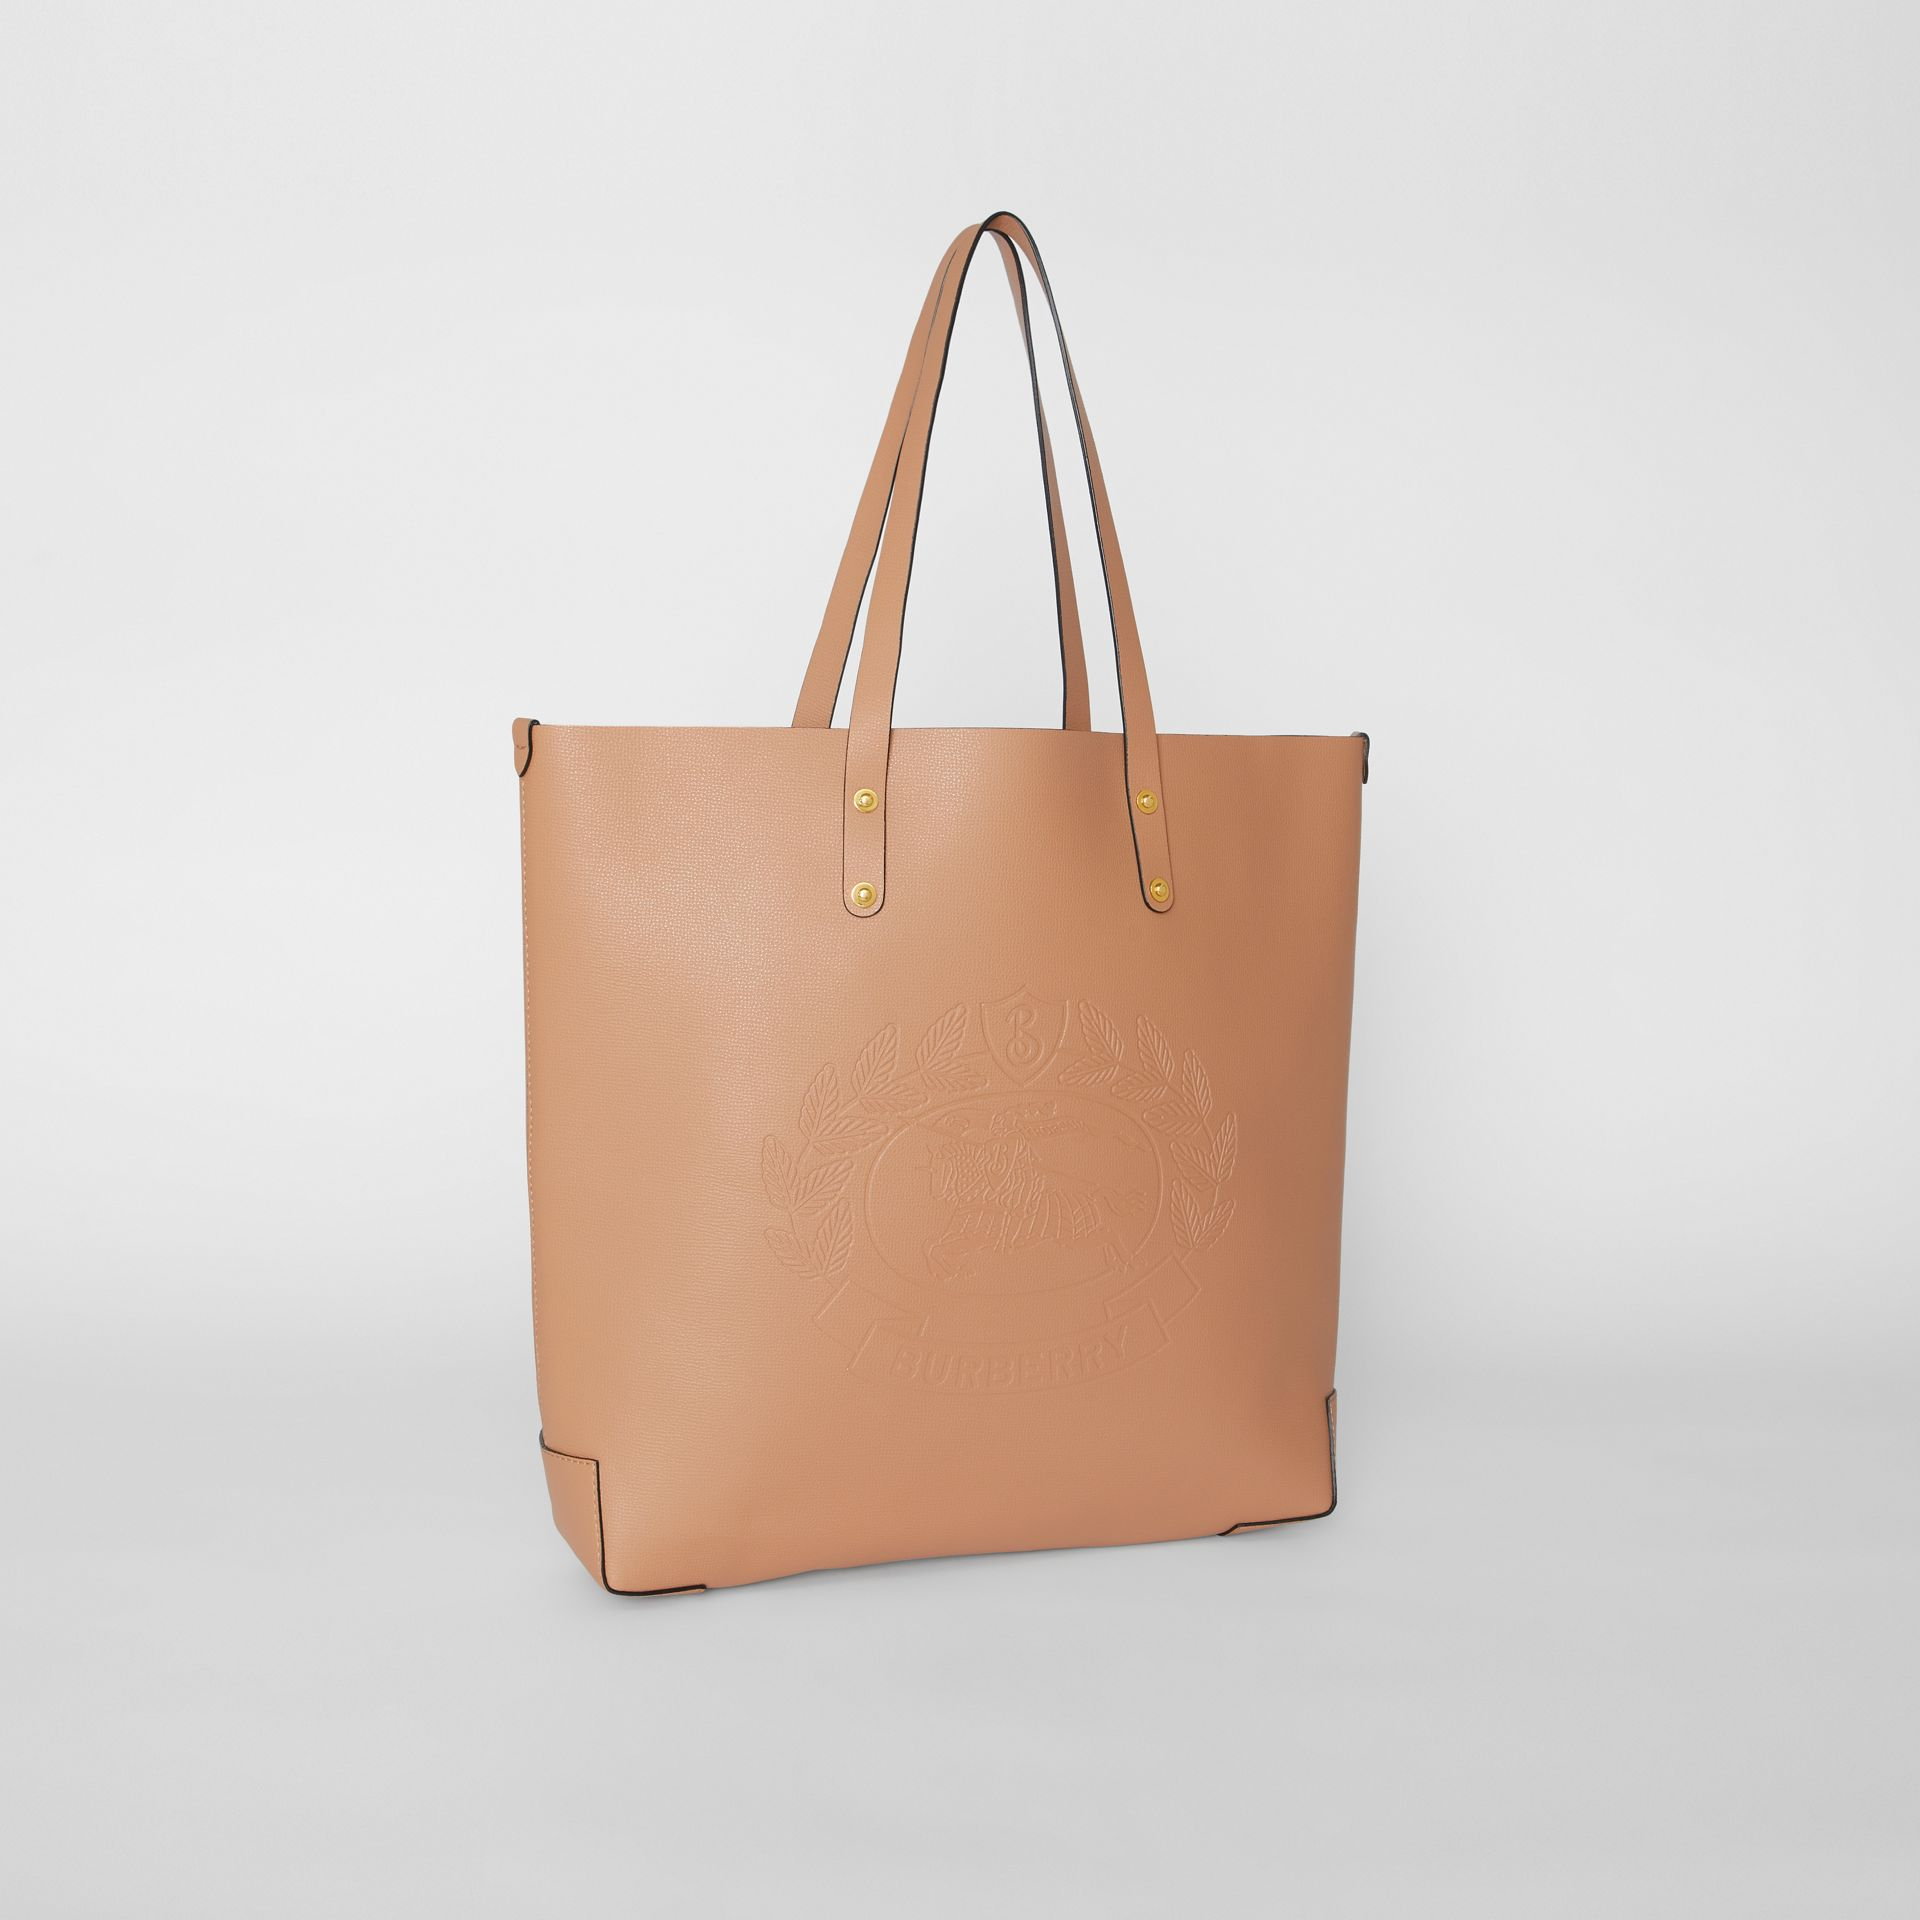 Embossed Crest Leather Tote in Light Camel - Women | Burberry - gallery image 4